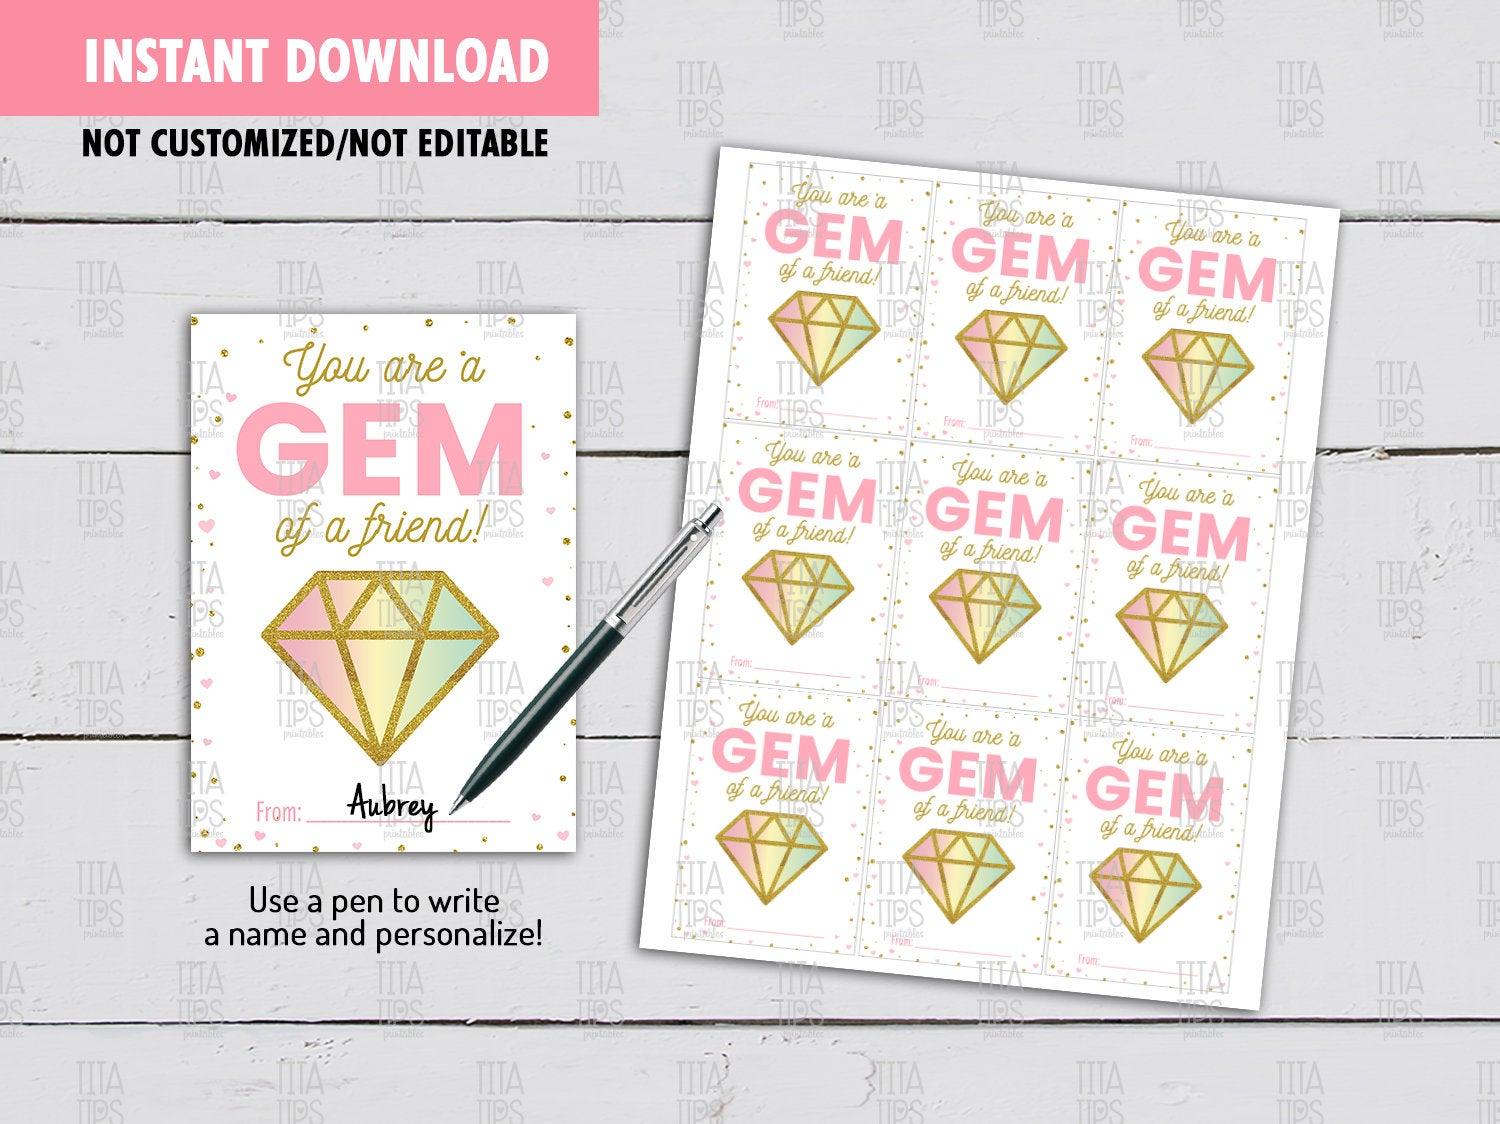 You are a Gem of a friend Valentine's Day Card DIY Printable, Gem Glitter Exchange Tag, Instant Download - TitaTipsPrintables